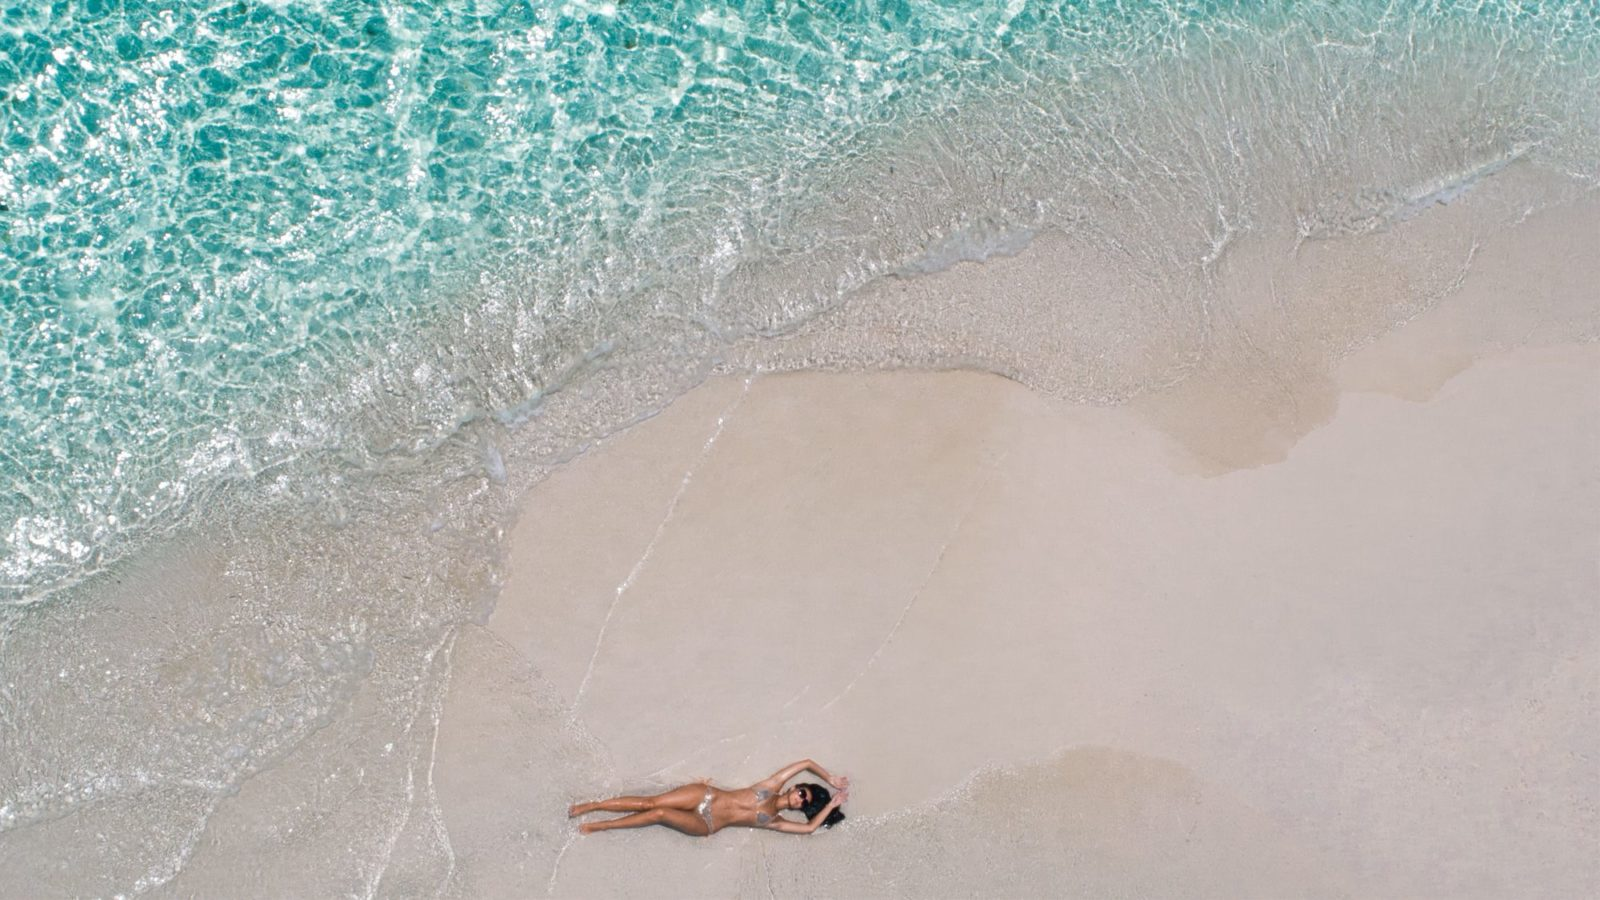 The Maldives will be reopening tourist resorts from mid-July